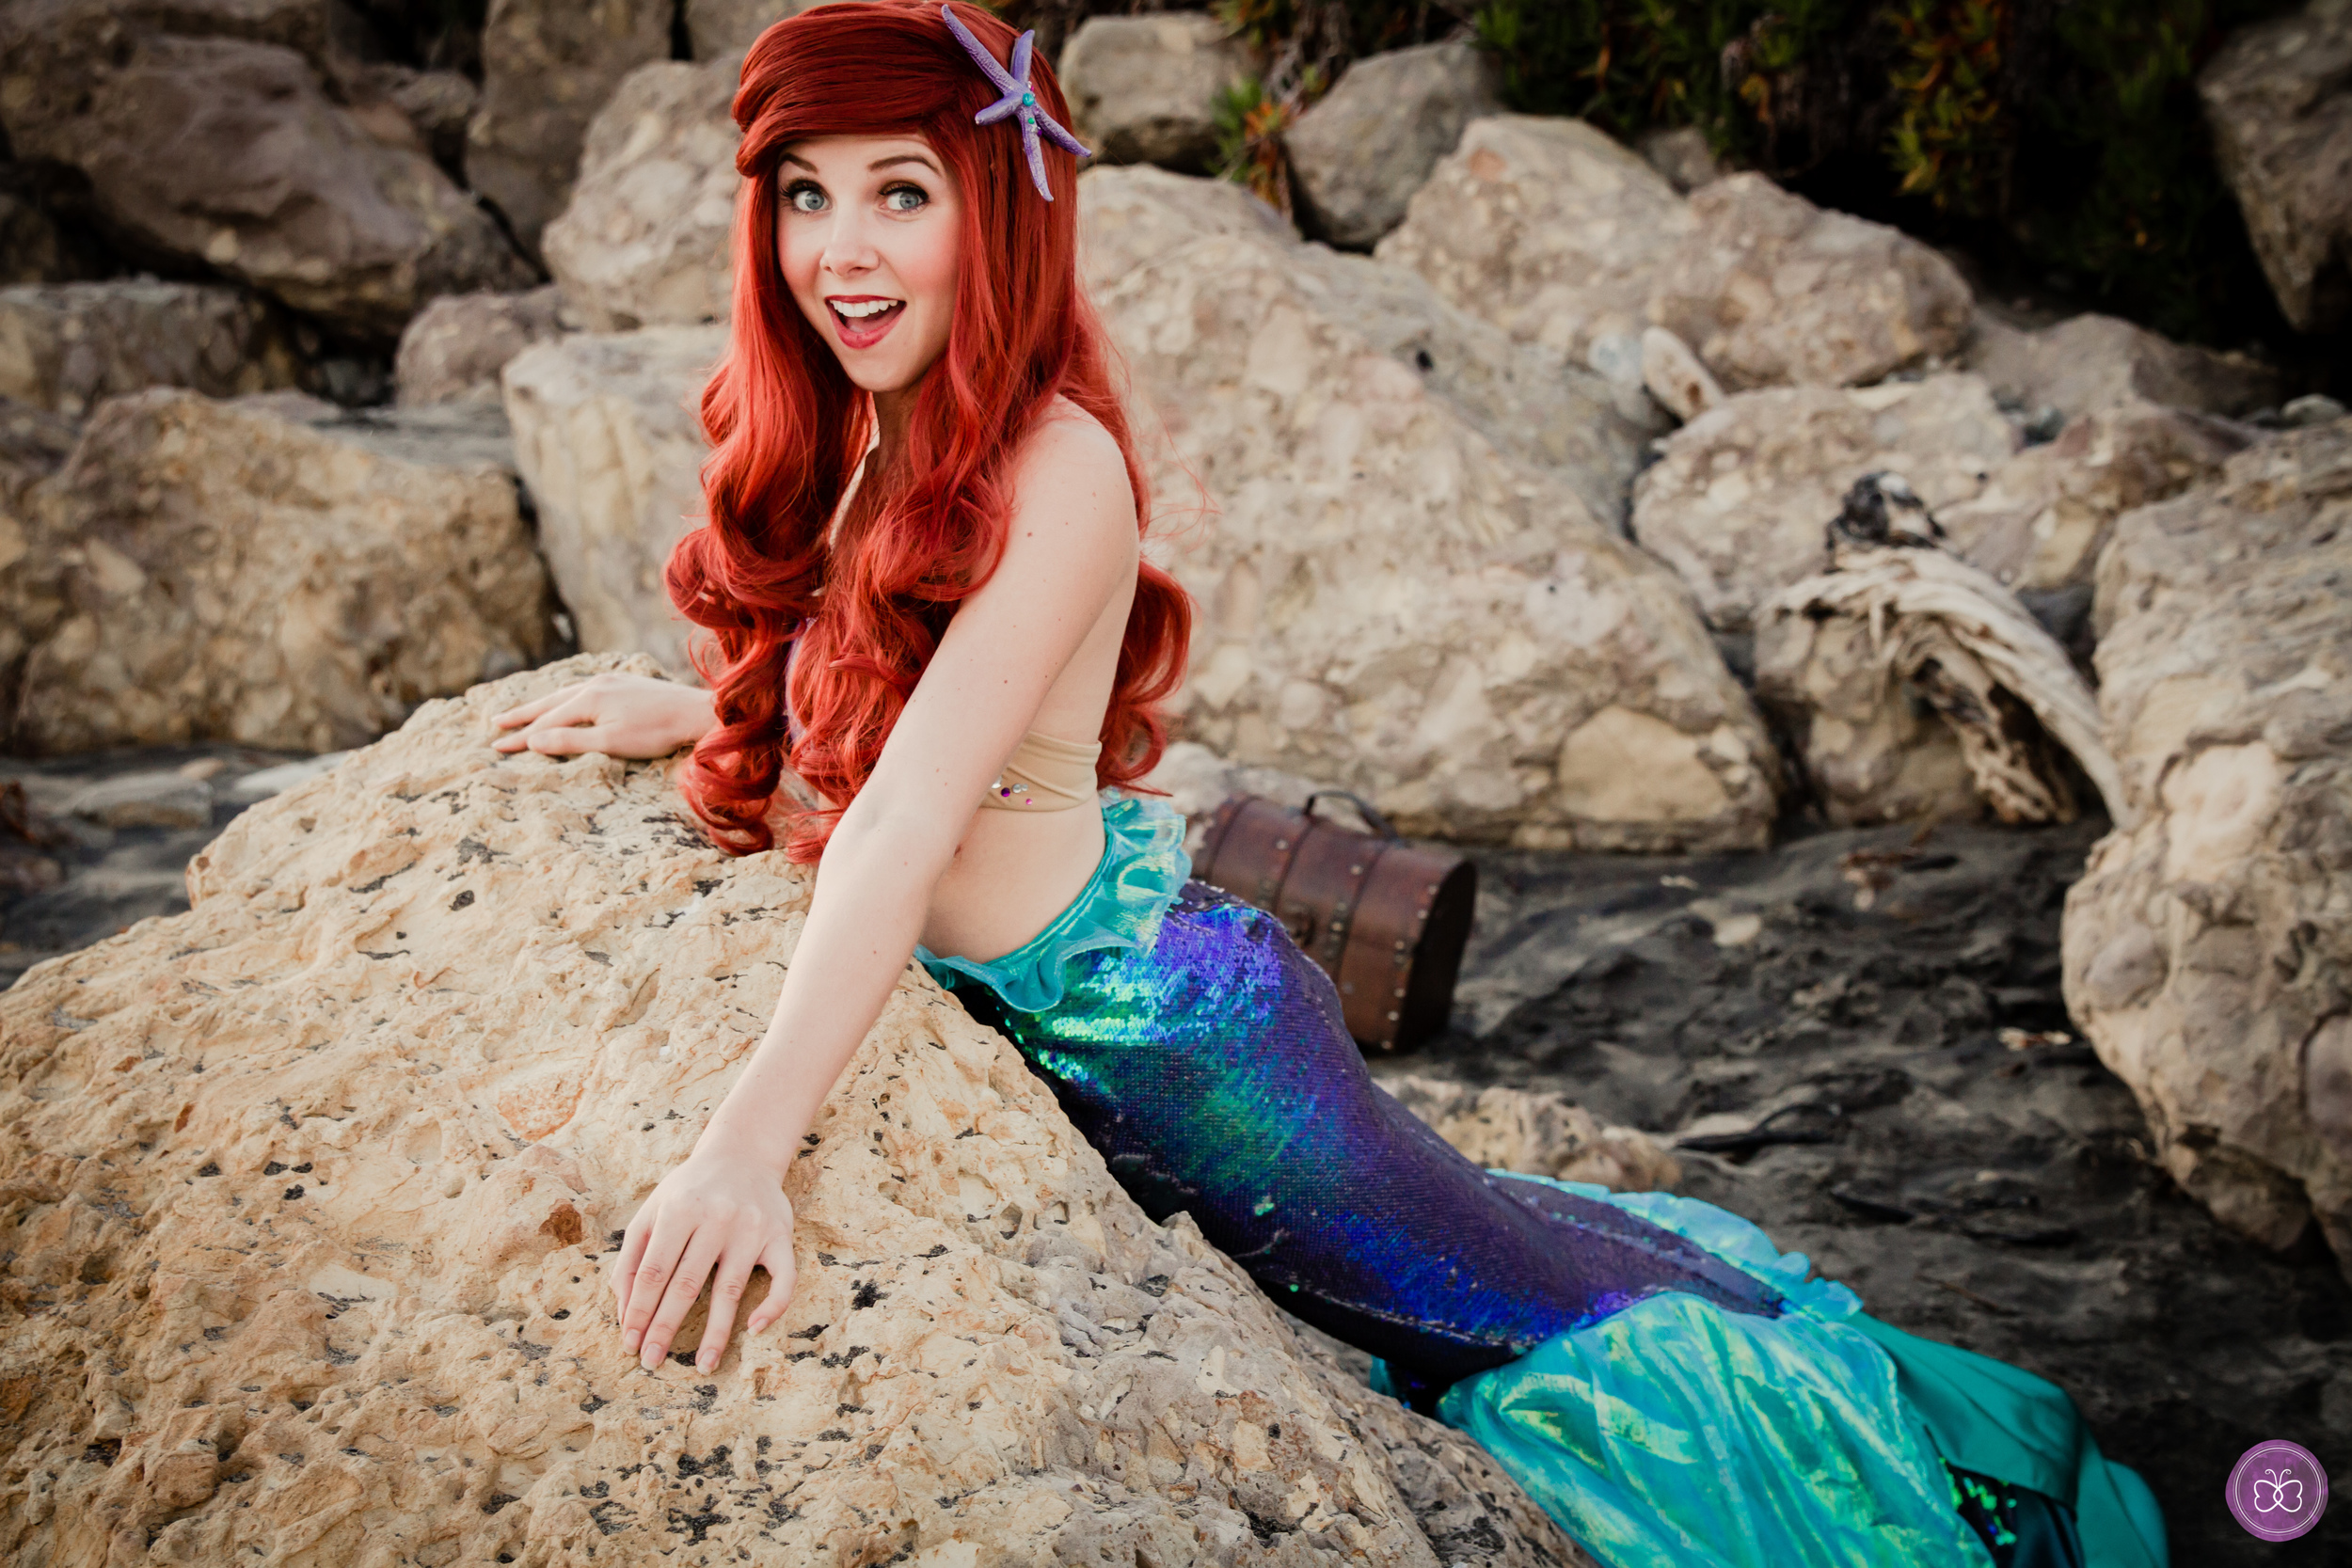 For your 'Under the Sea' themed princess parties, we also have a beautifully realistic Little Mermaid character experience. Walkable fin with no visible feet or legs!